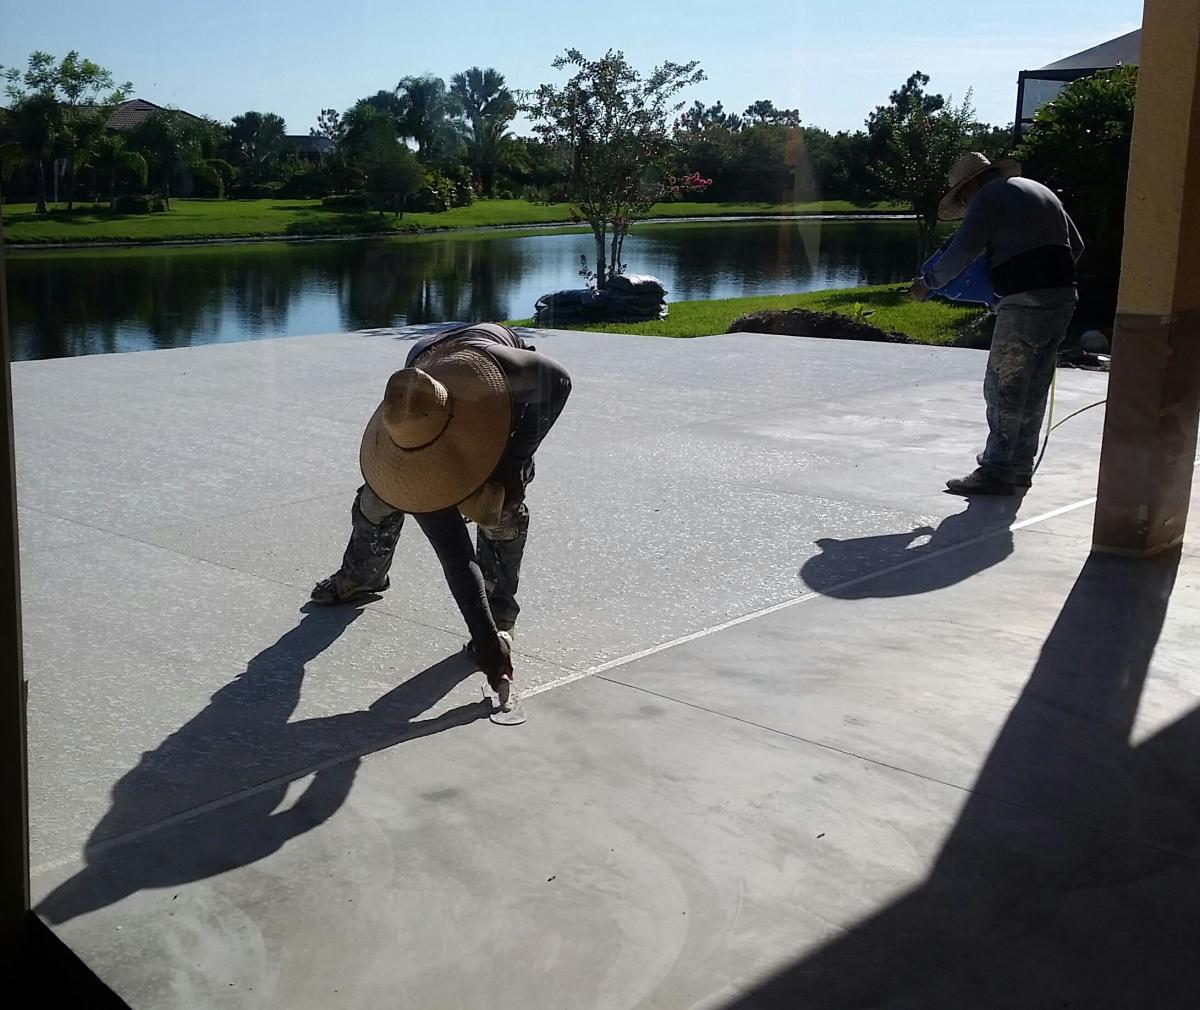 The upright worker has a hopper filled with the CoolDeck solution and he's spraying it on the concrete. The worker who's leaning down has a trowel to spread and flatten it. He's wearing spikes strapped on his shoes to avoid treading on the wet glop.